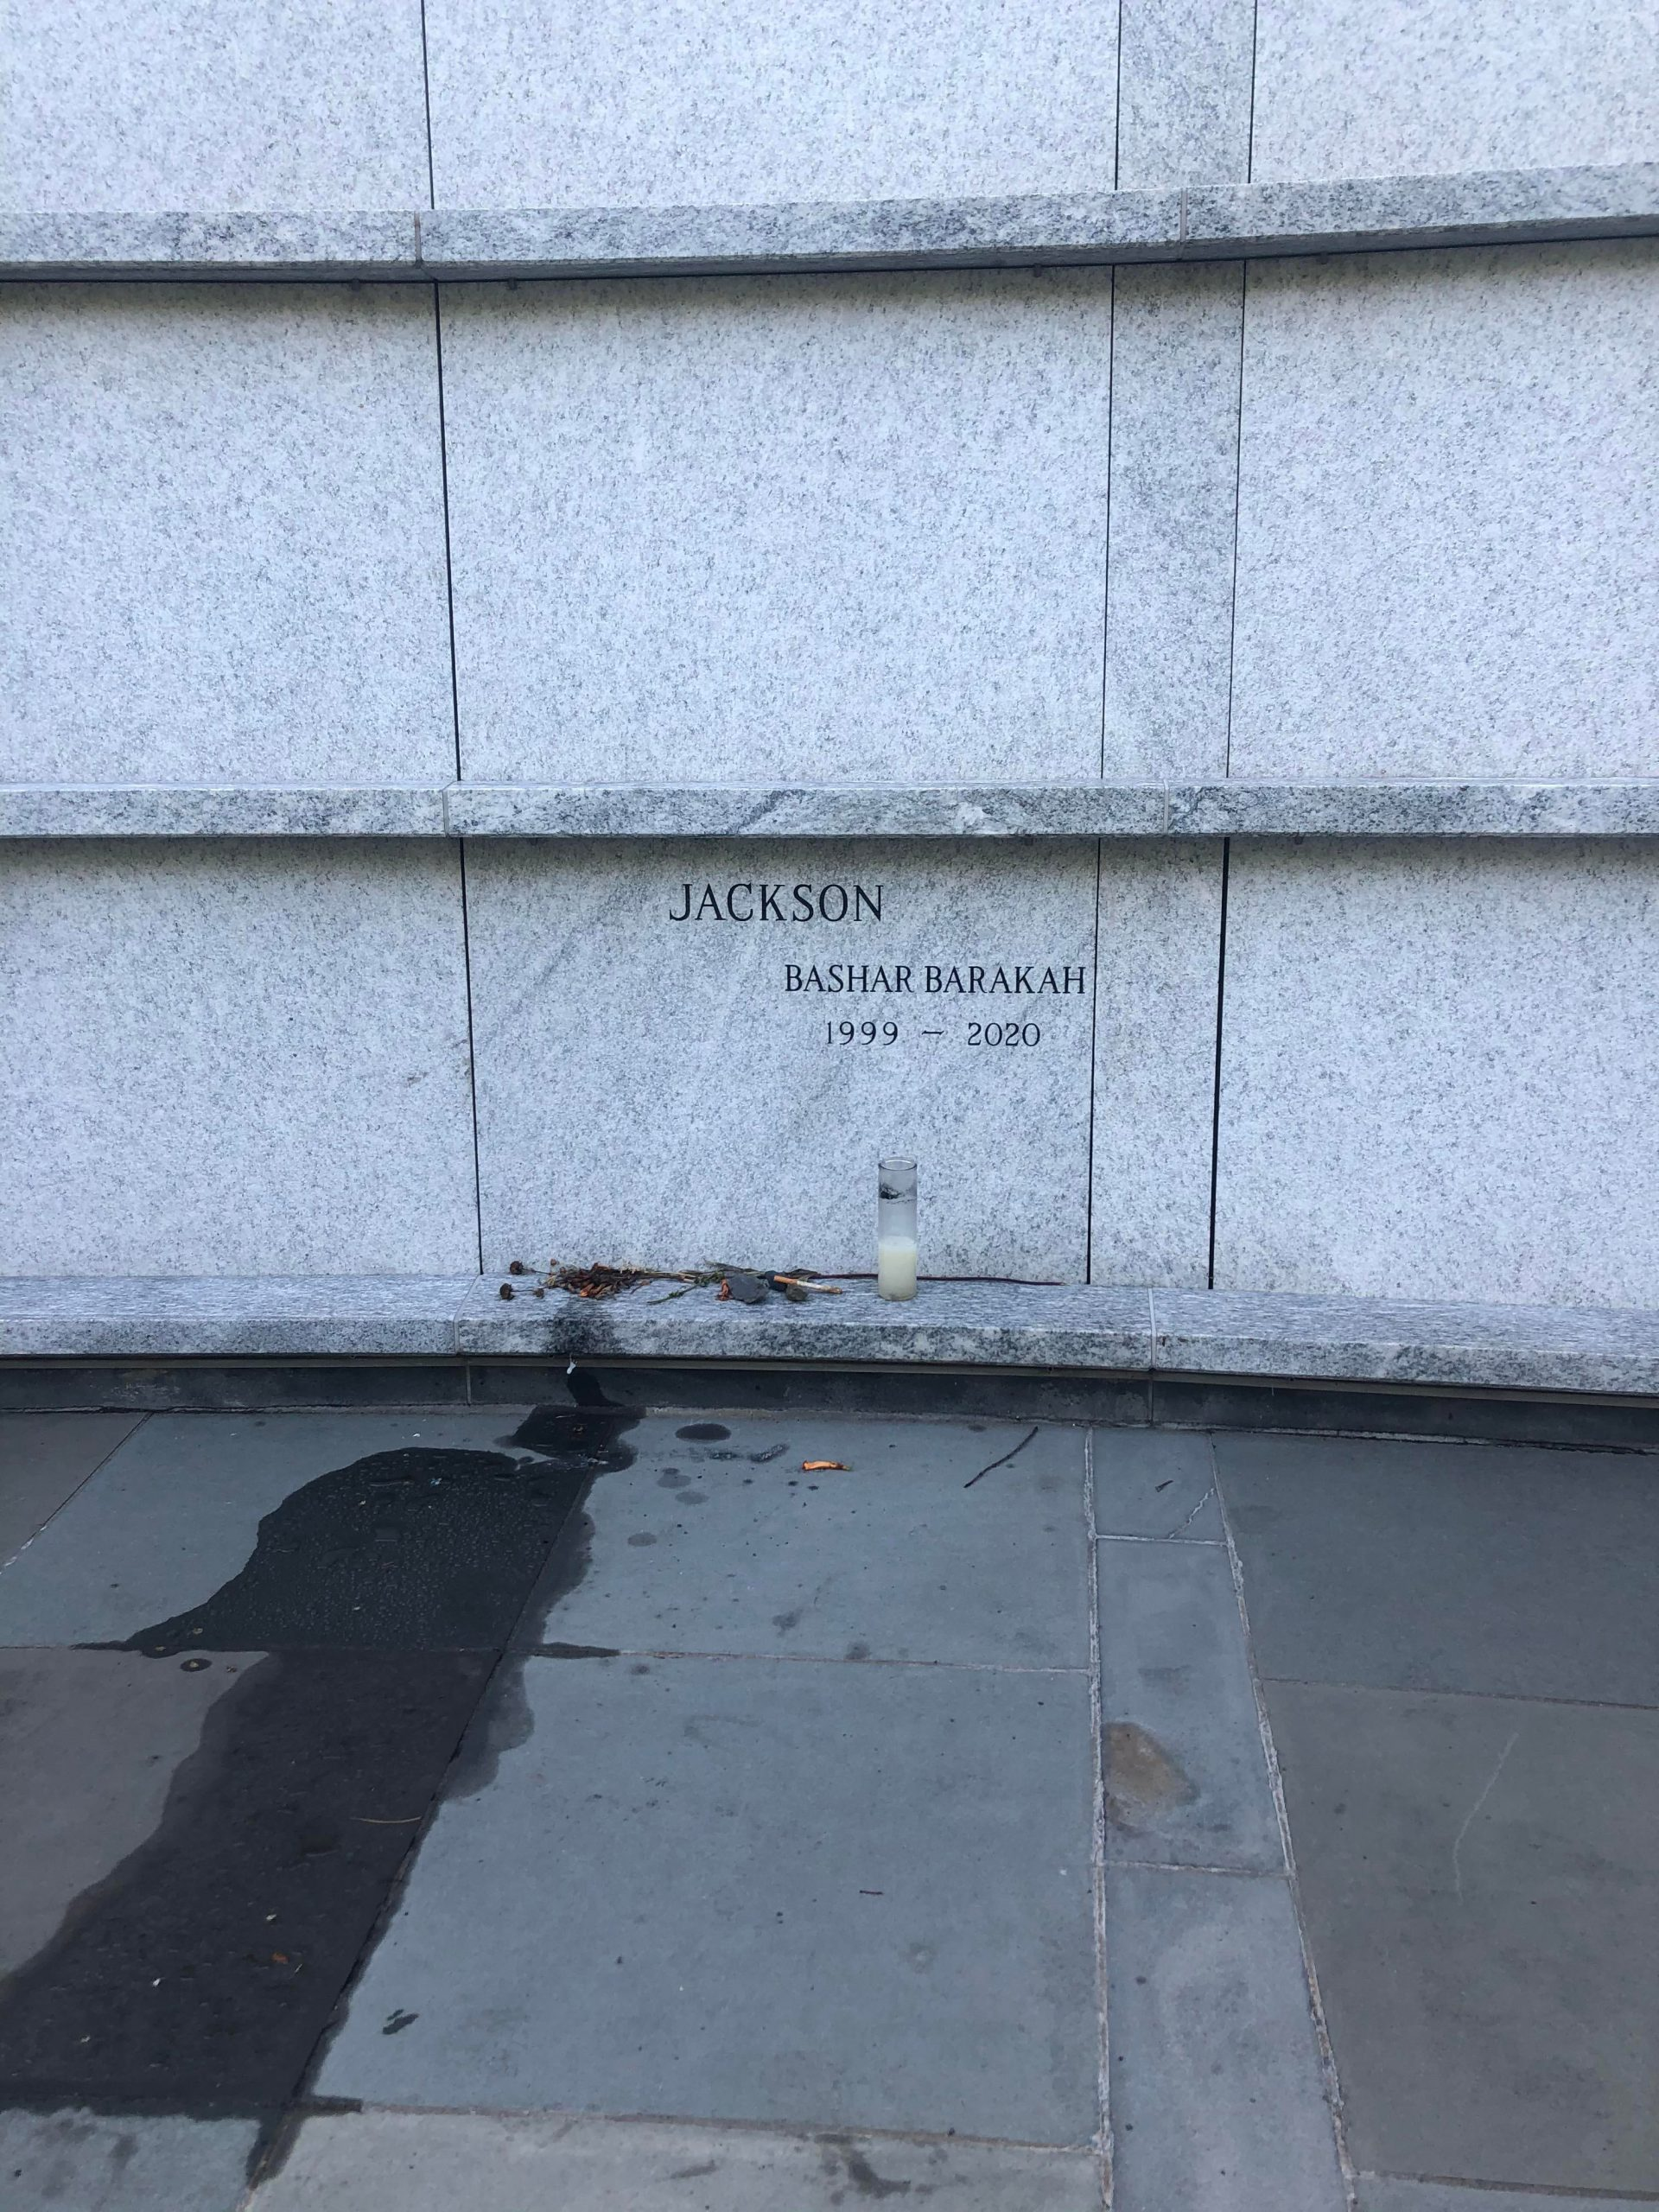 Pop Smoke's Grave's Vandalization in the Green-Wood Cemetery, Brooklyn: Unpleasant Act